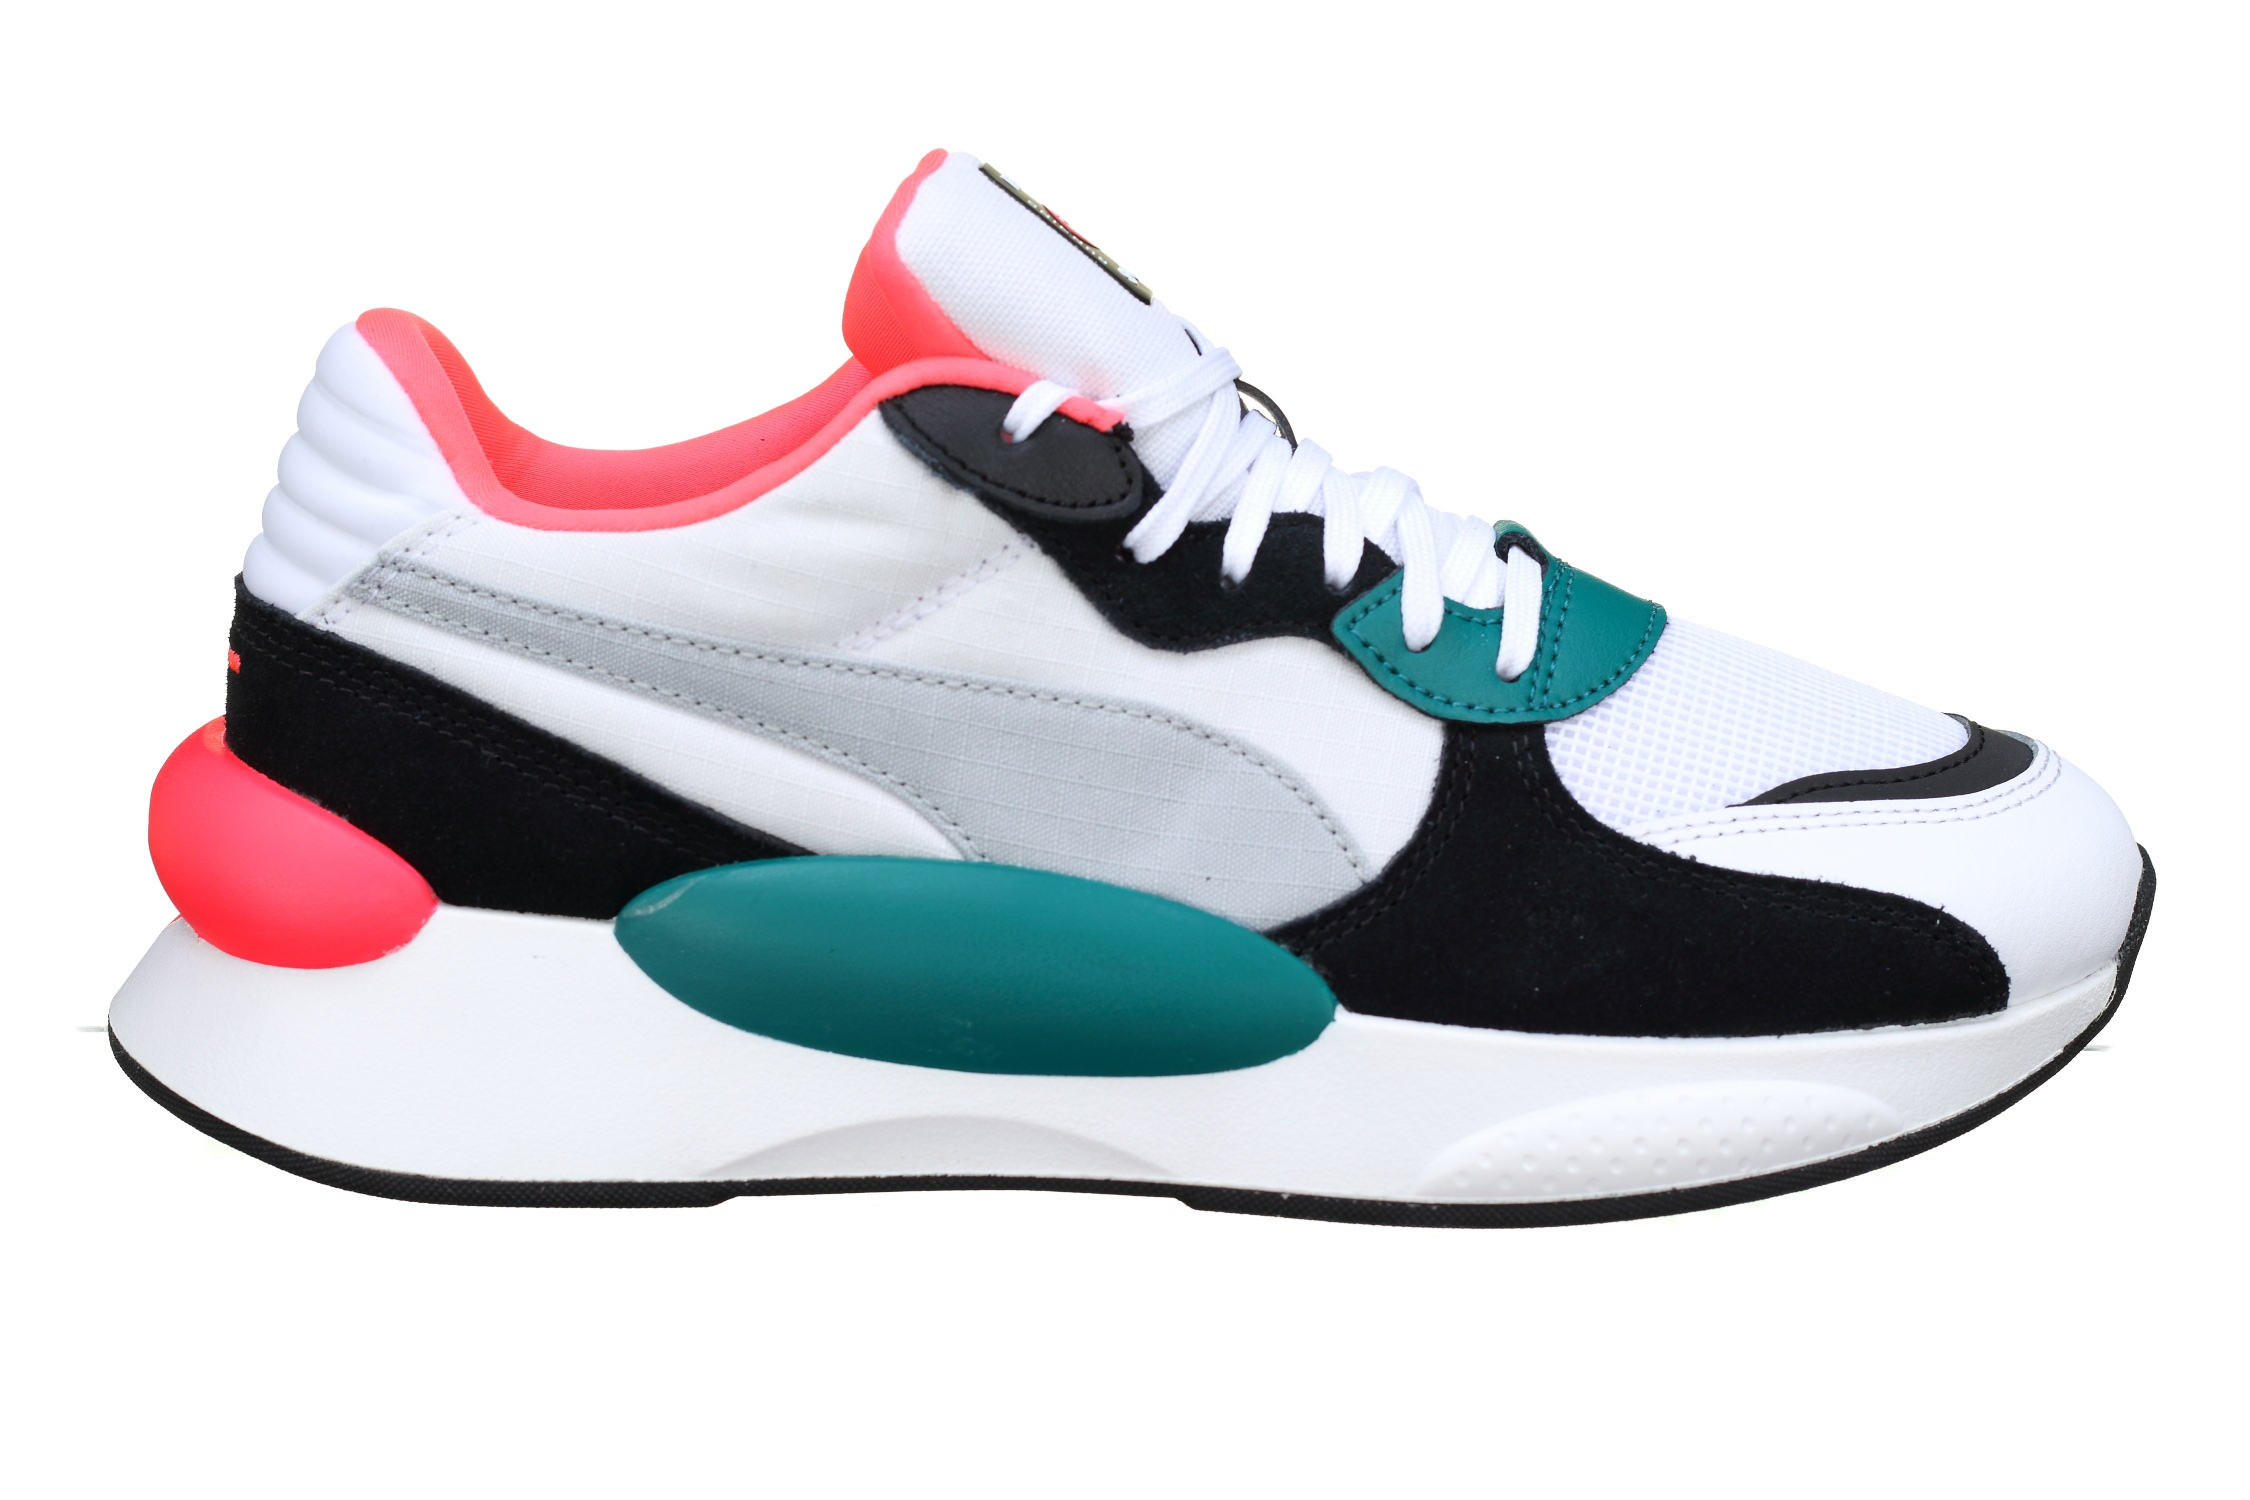 http://www.leadermode.com/176066/puma-rs-98-space-370230-04-white-vert.jpg